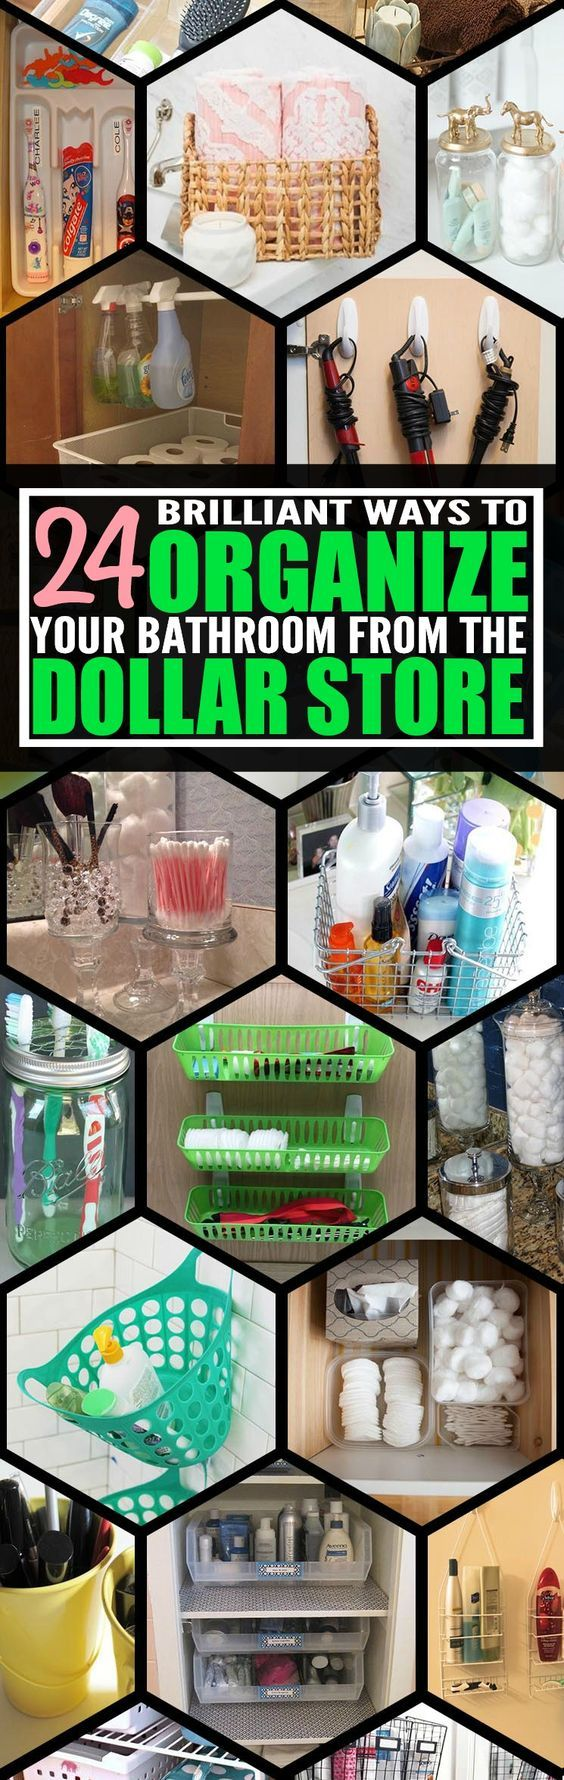 Keep your bathroom organized without breaking your budget with these dollar store bathroom organization ideas.